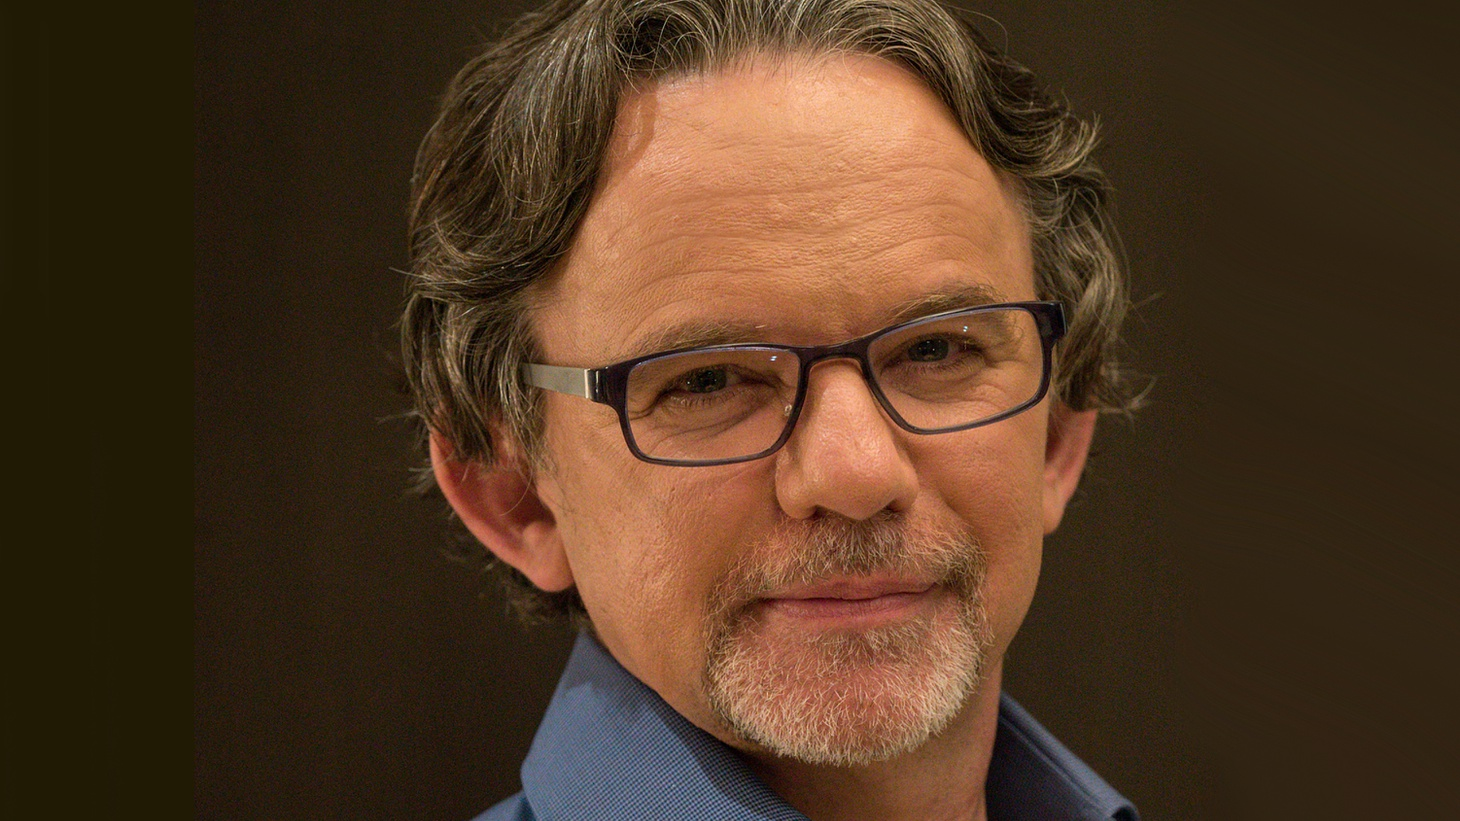 Frank Spotnitz joins Elvis Mitchell to discuss his Amazon Original Series The Man in the High Castle, a visual adaptation of the Philip K. Dick novel of the same name.